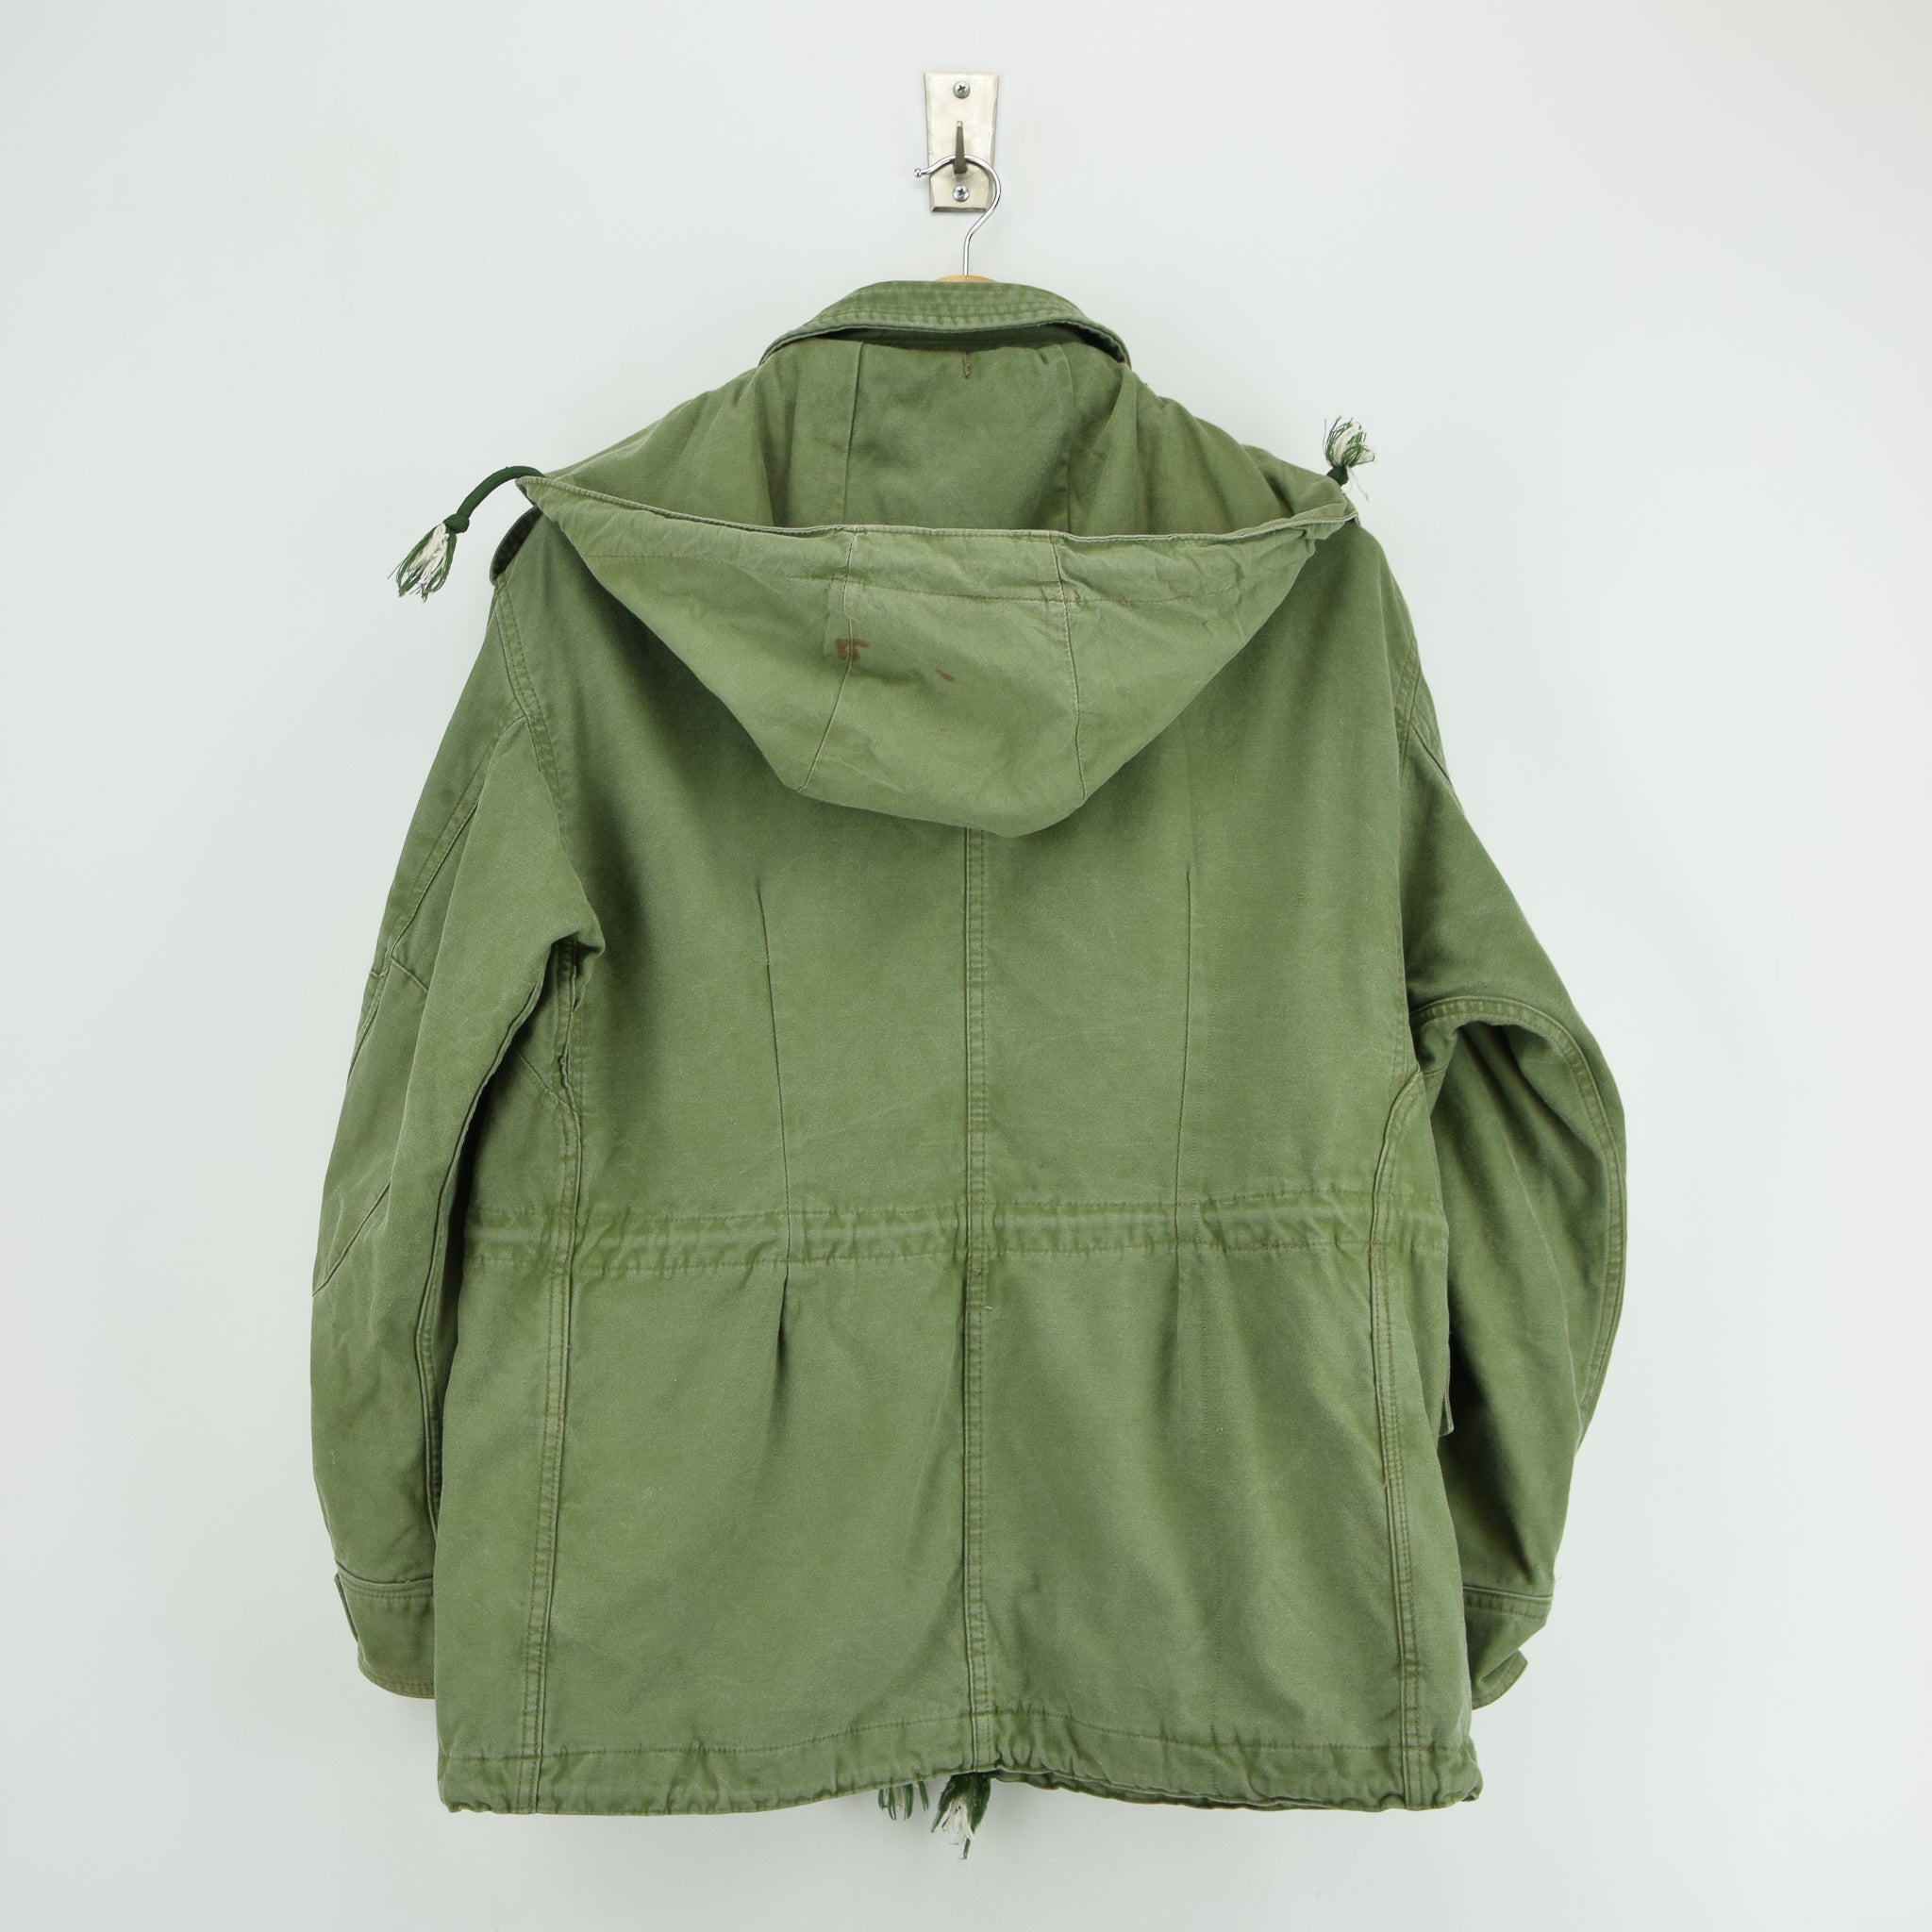 Vintage 90s Irish Army Combat Tunic Field Jacket Green Made in Ireland M back